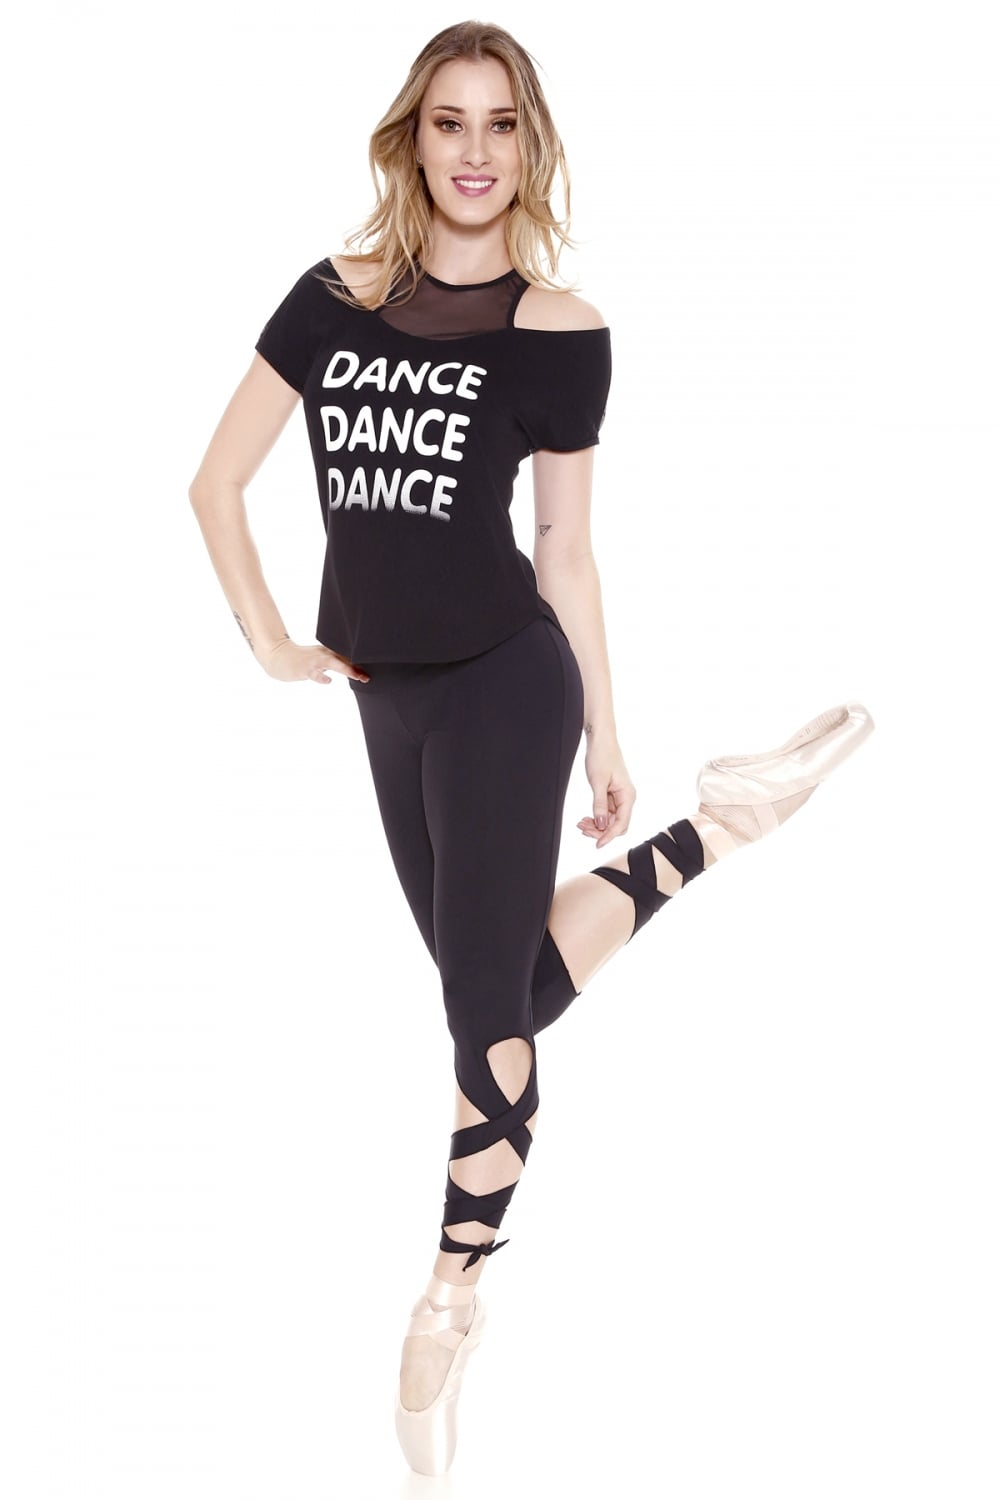 daae25f5f3474 Manufacturers of dancewear and dance footwear, they work alongside experts  to produce products for all dancers whether novice ...